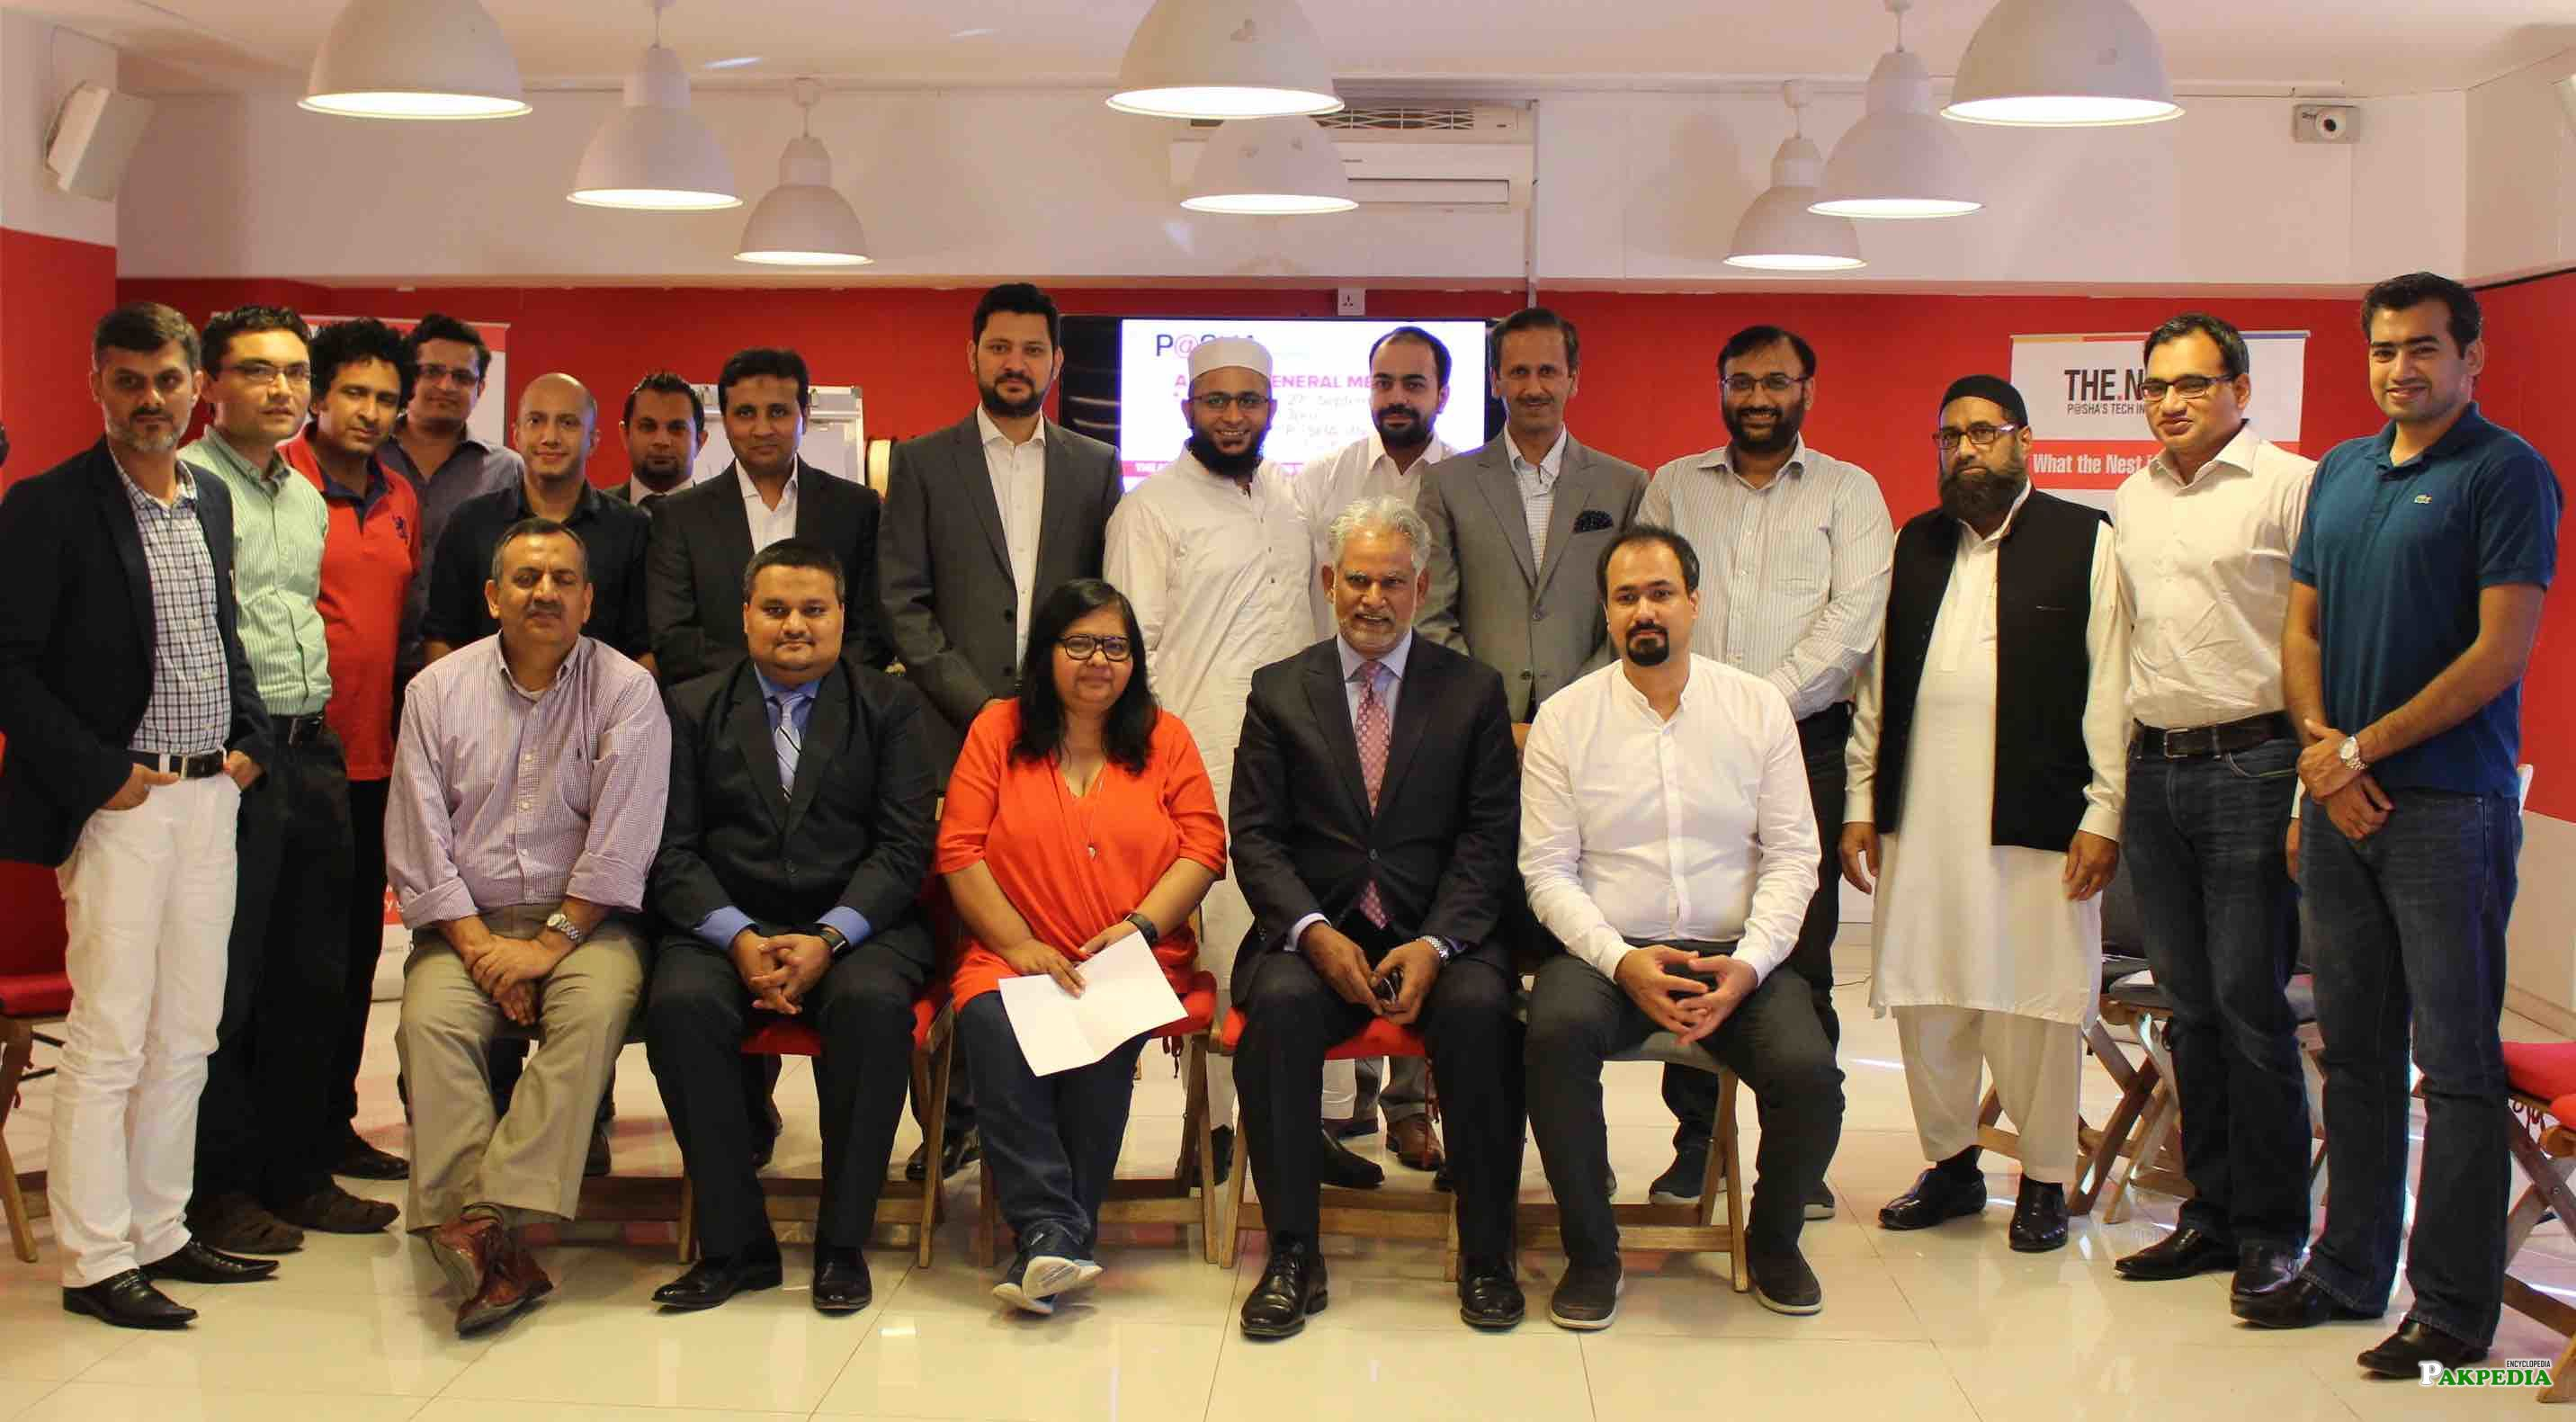 The new Chairman and Central Executive Committee (CEC) of Pakistan Software Houses Association for IT & ITES (P@SHA)